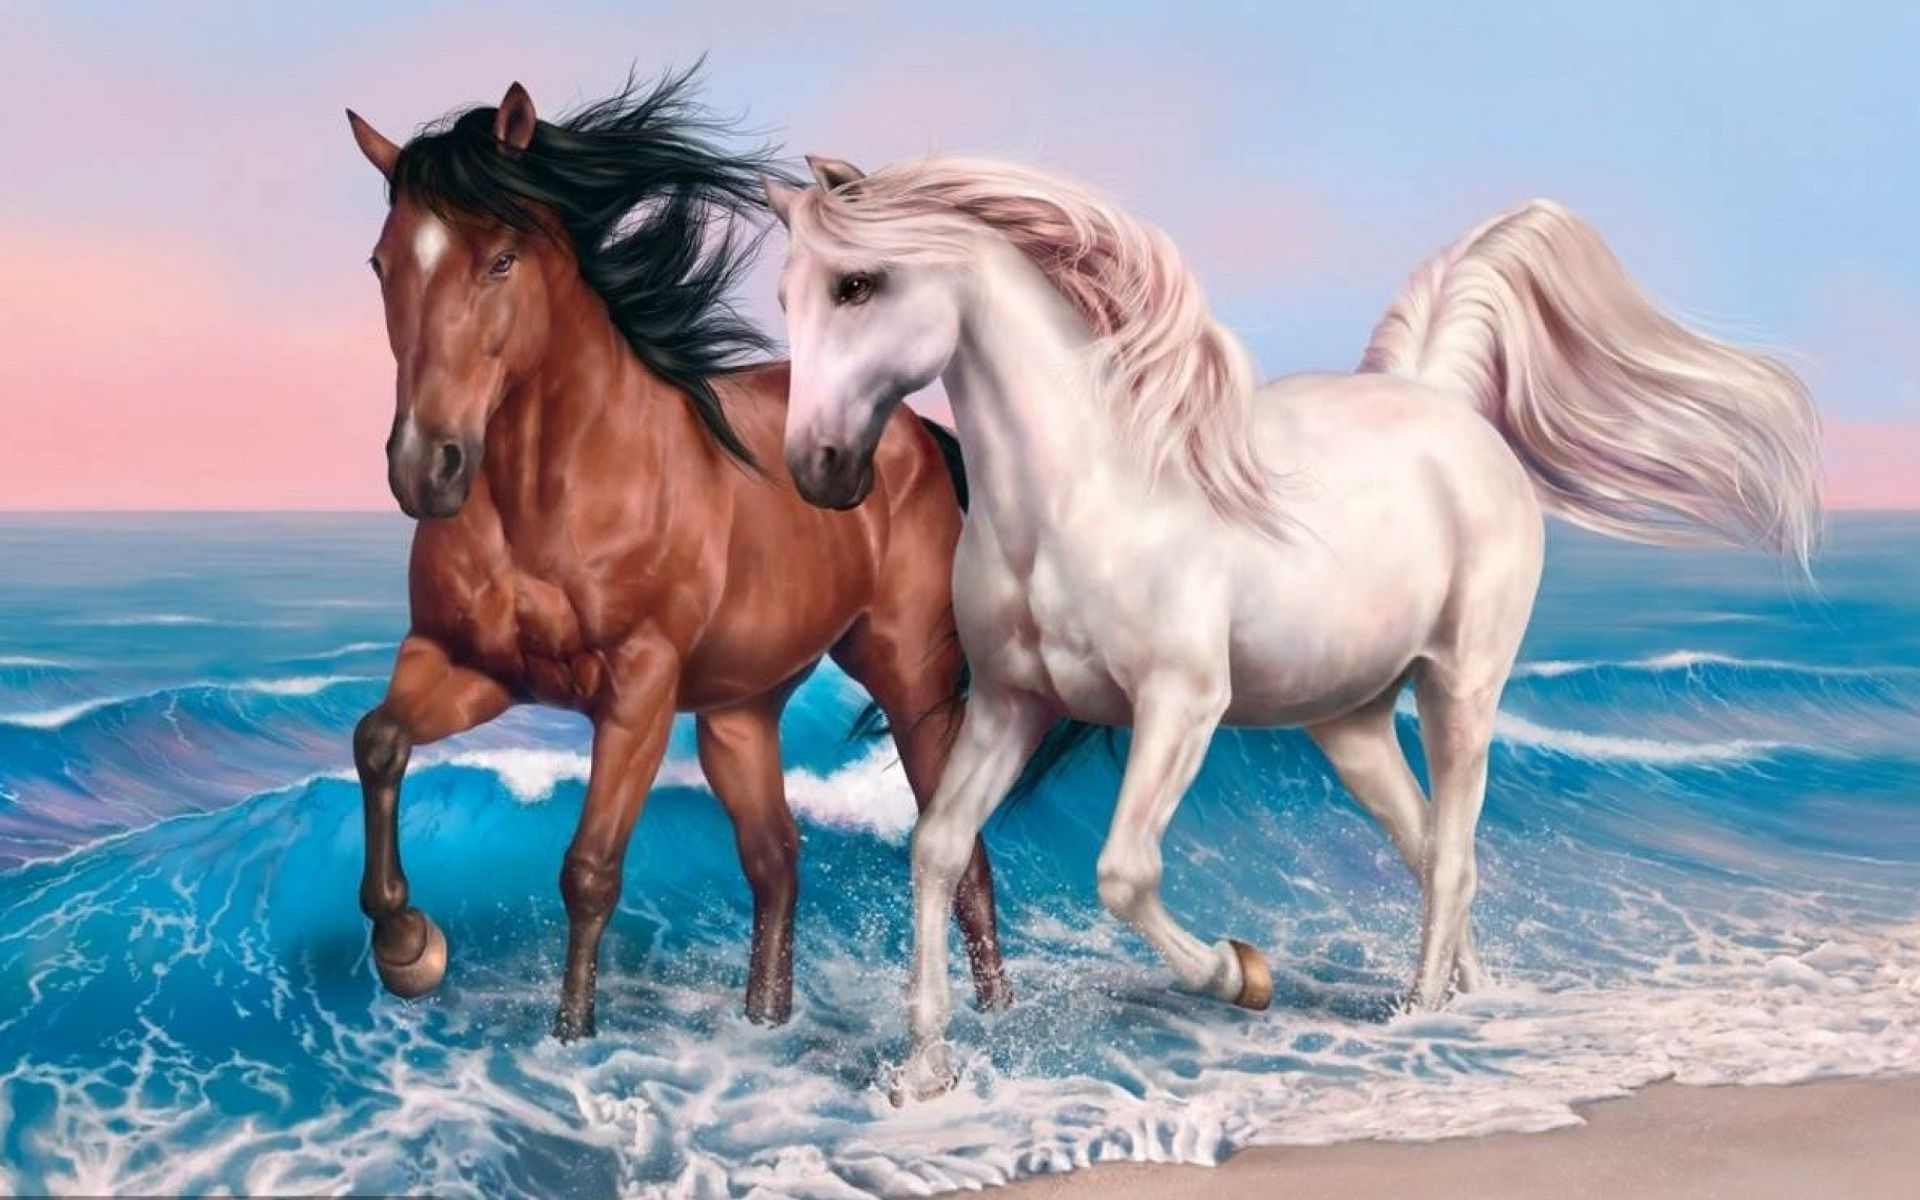 horses together running in the beach Beautiful horse